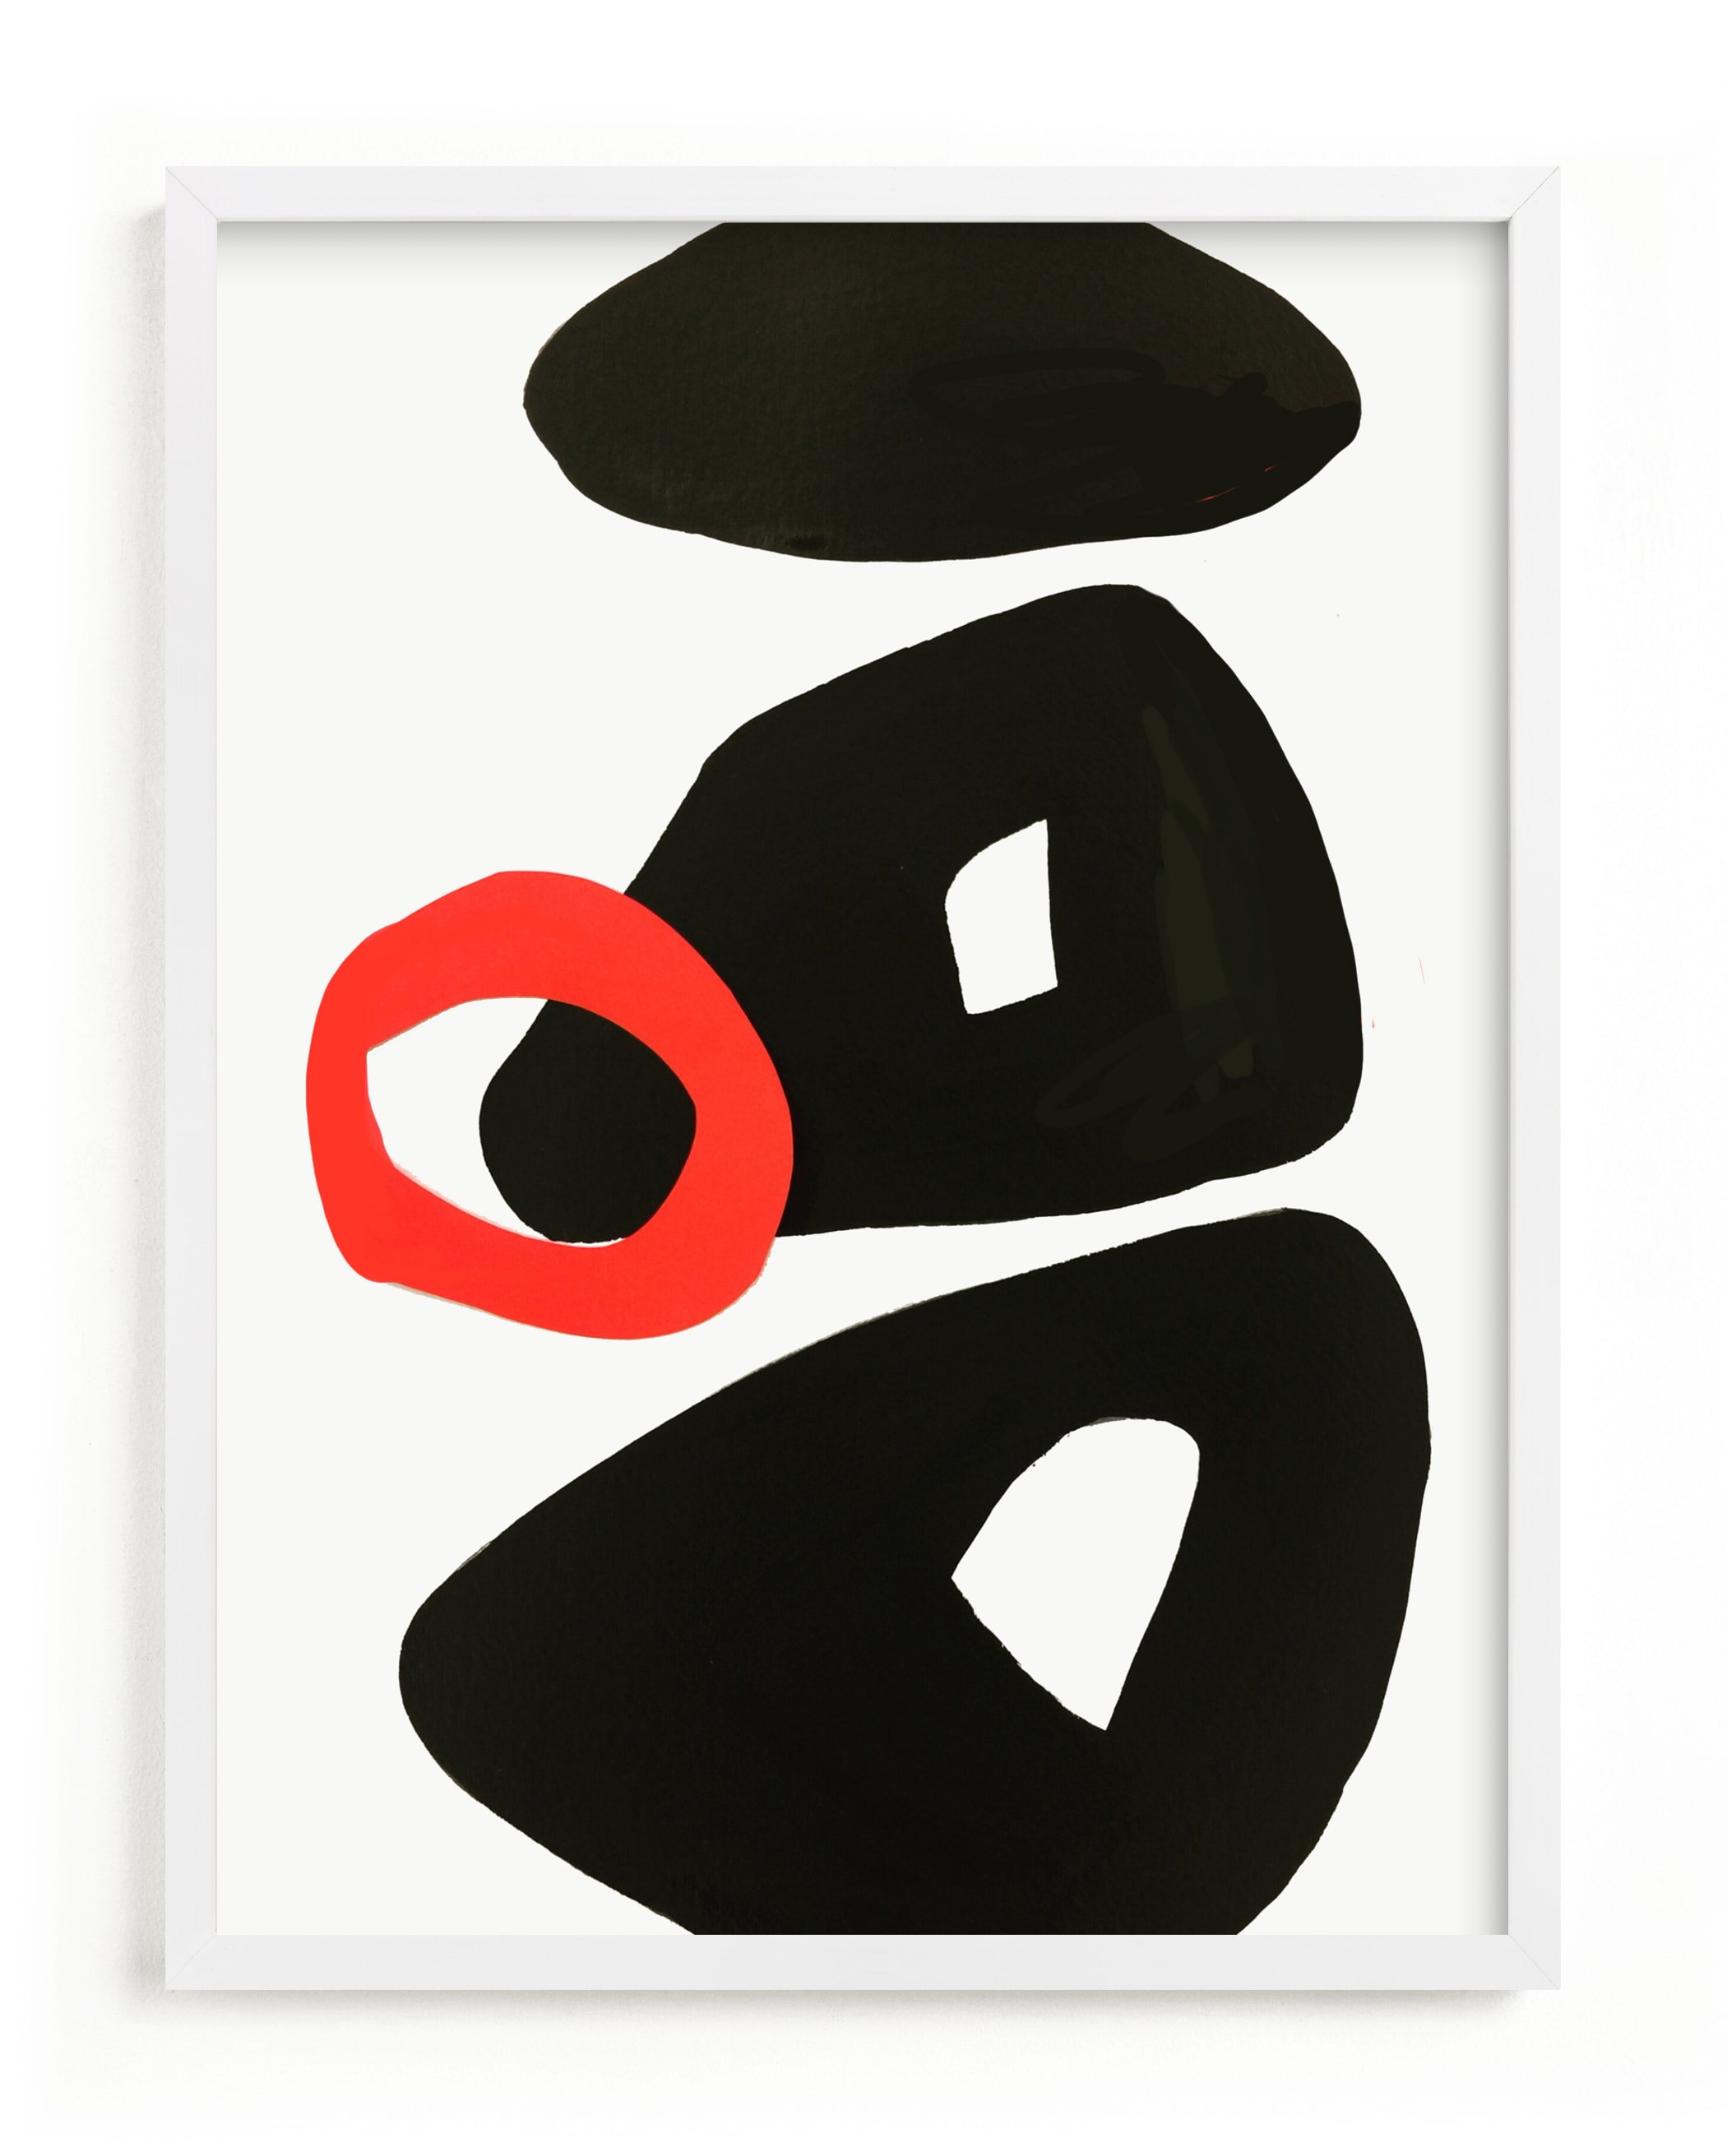 This is a black and white art by Deborah Velasquez called Red Circle.